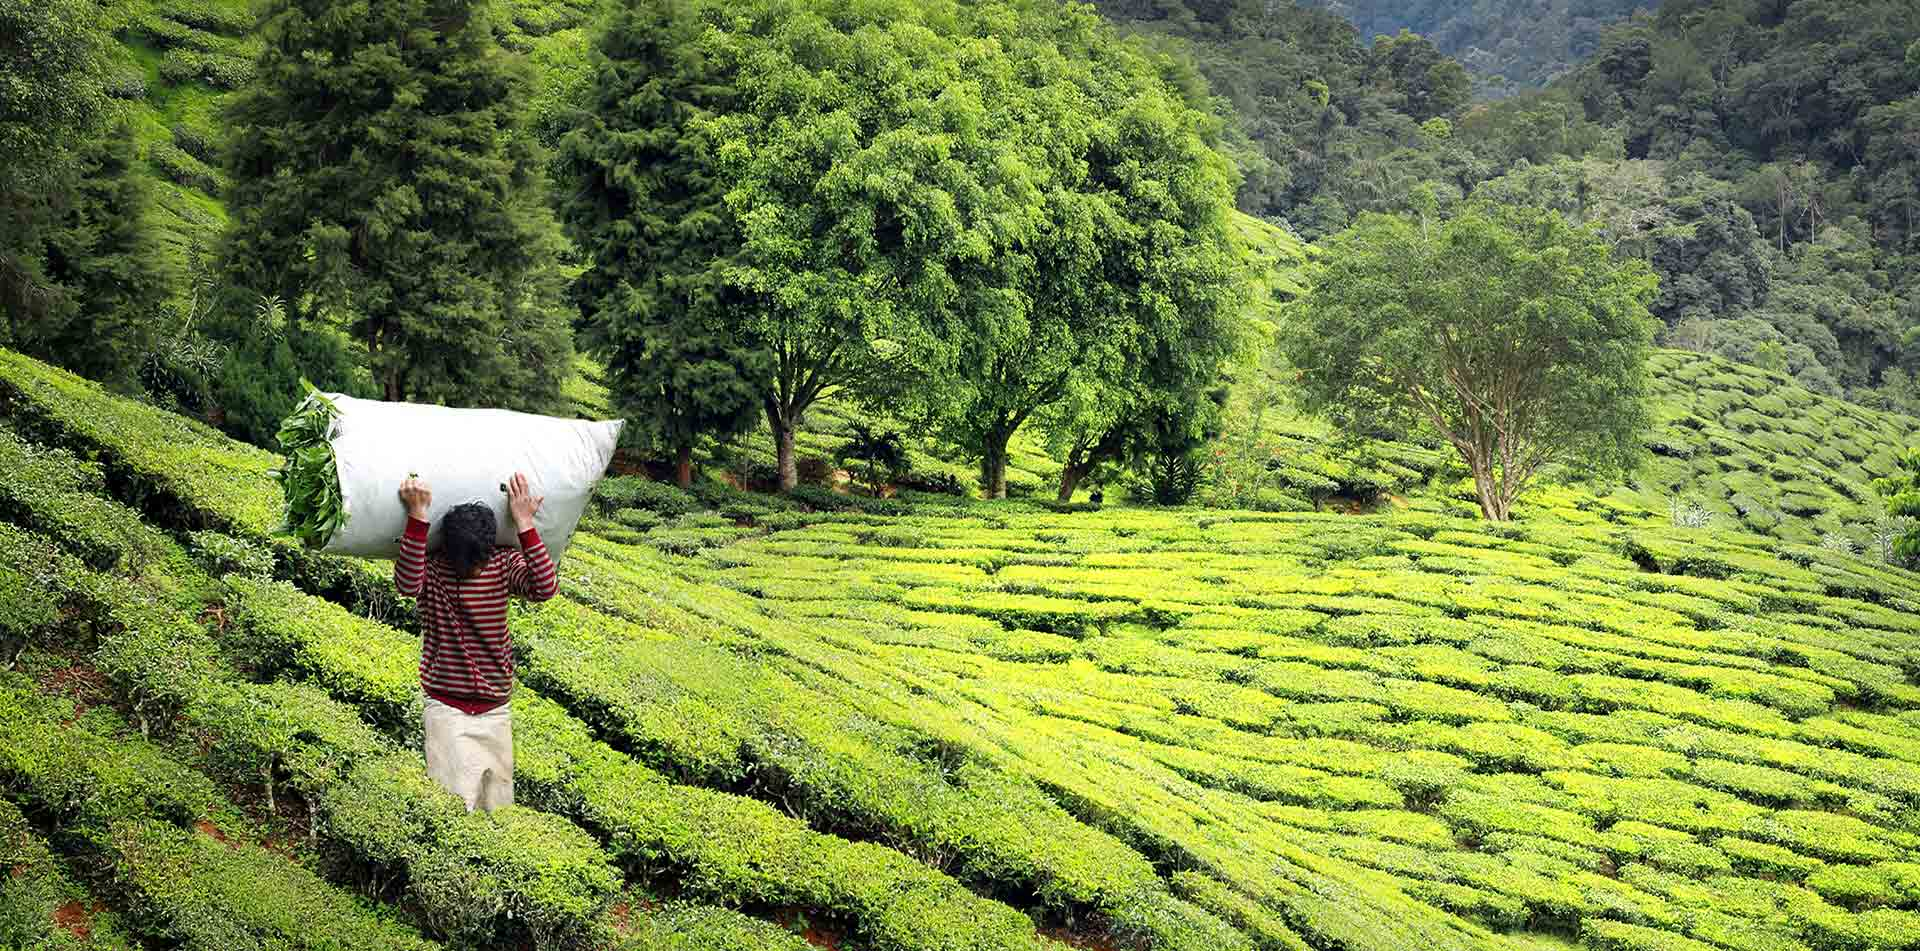 Asia India Darjeeling local farmer carrying bag of harvested green tea leaves - luxury vacation destinations